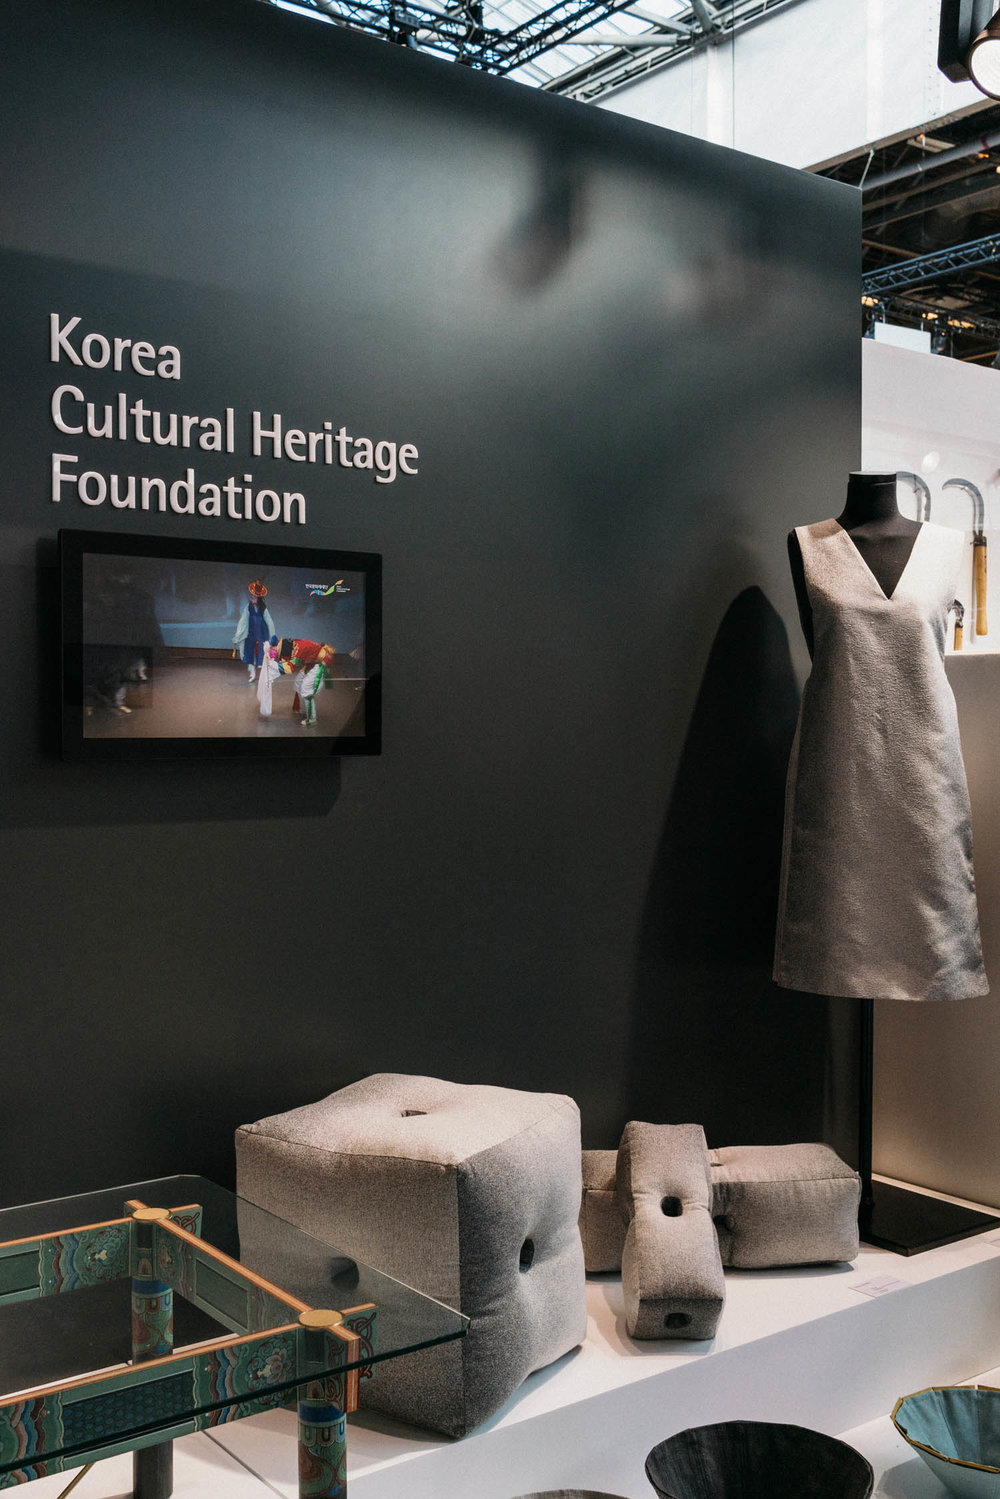 Korea Cultural Heritage Foundation